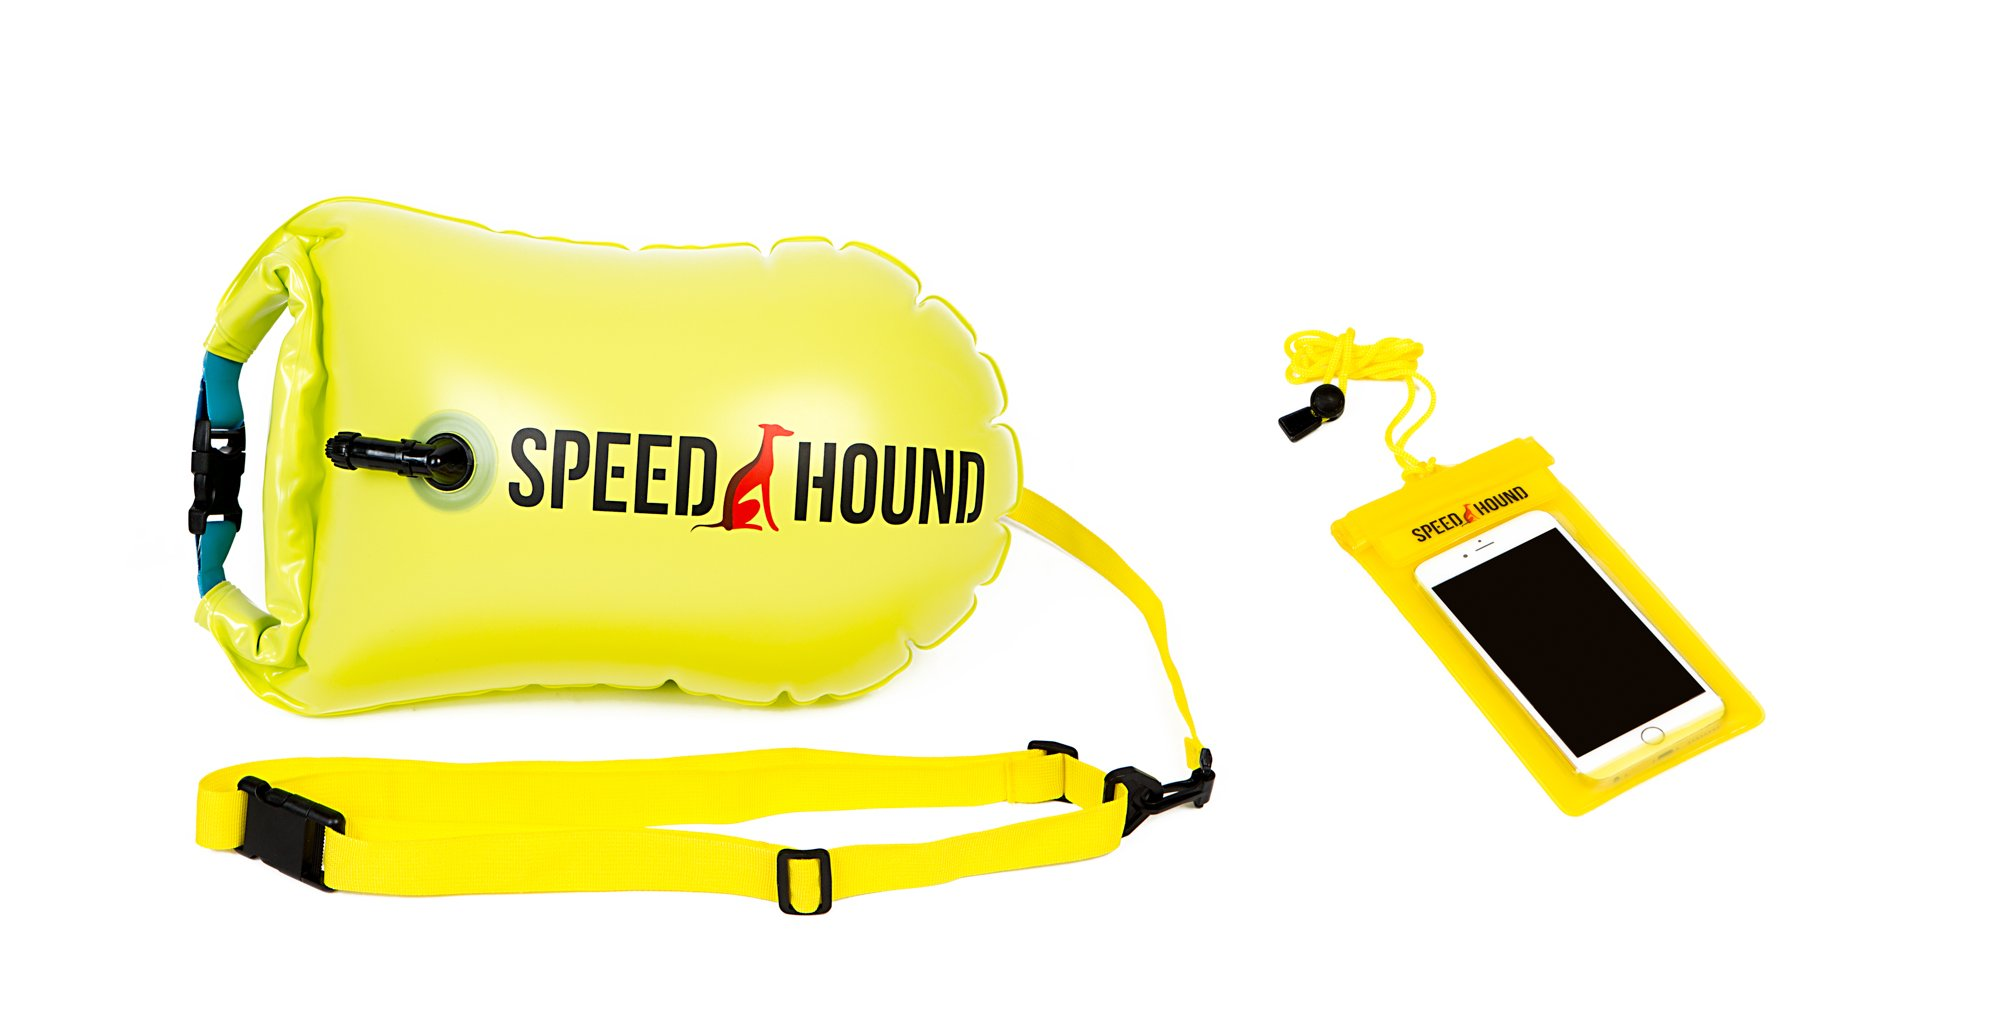 Speed Hound Sale Swim Buoy - Open Water Swim Buoy Flotation Device with Dry Bag and Waterproof Cell Phone Case (Highlighter Yellow) for Swimmers, Triathletes, and Snorkelers. Floats for Safer Swims